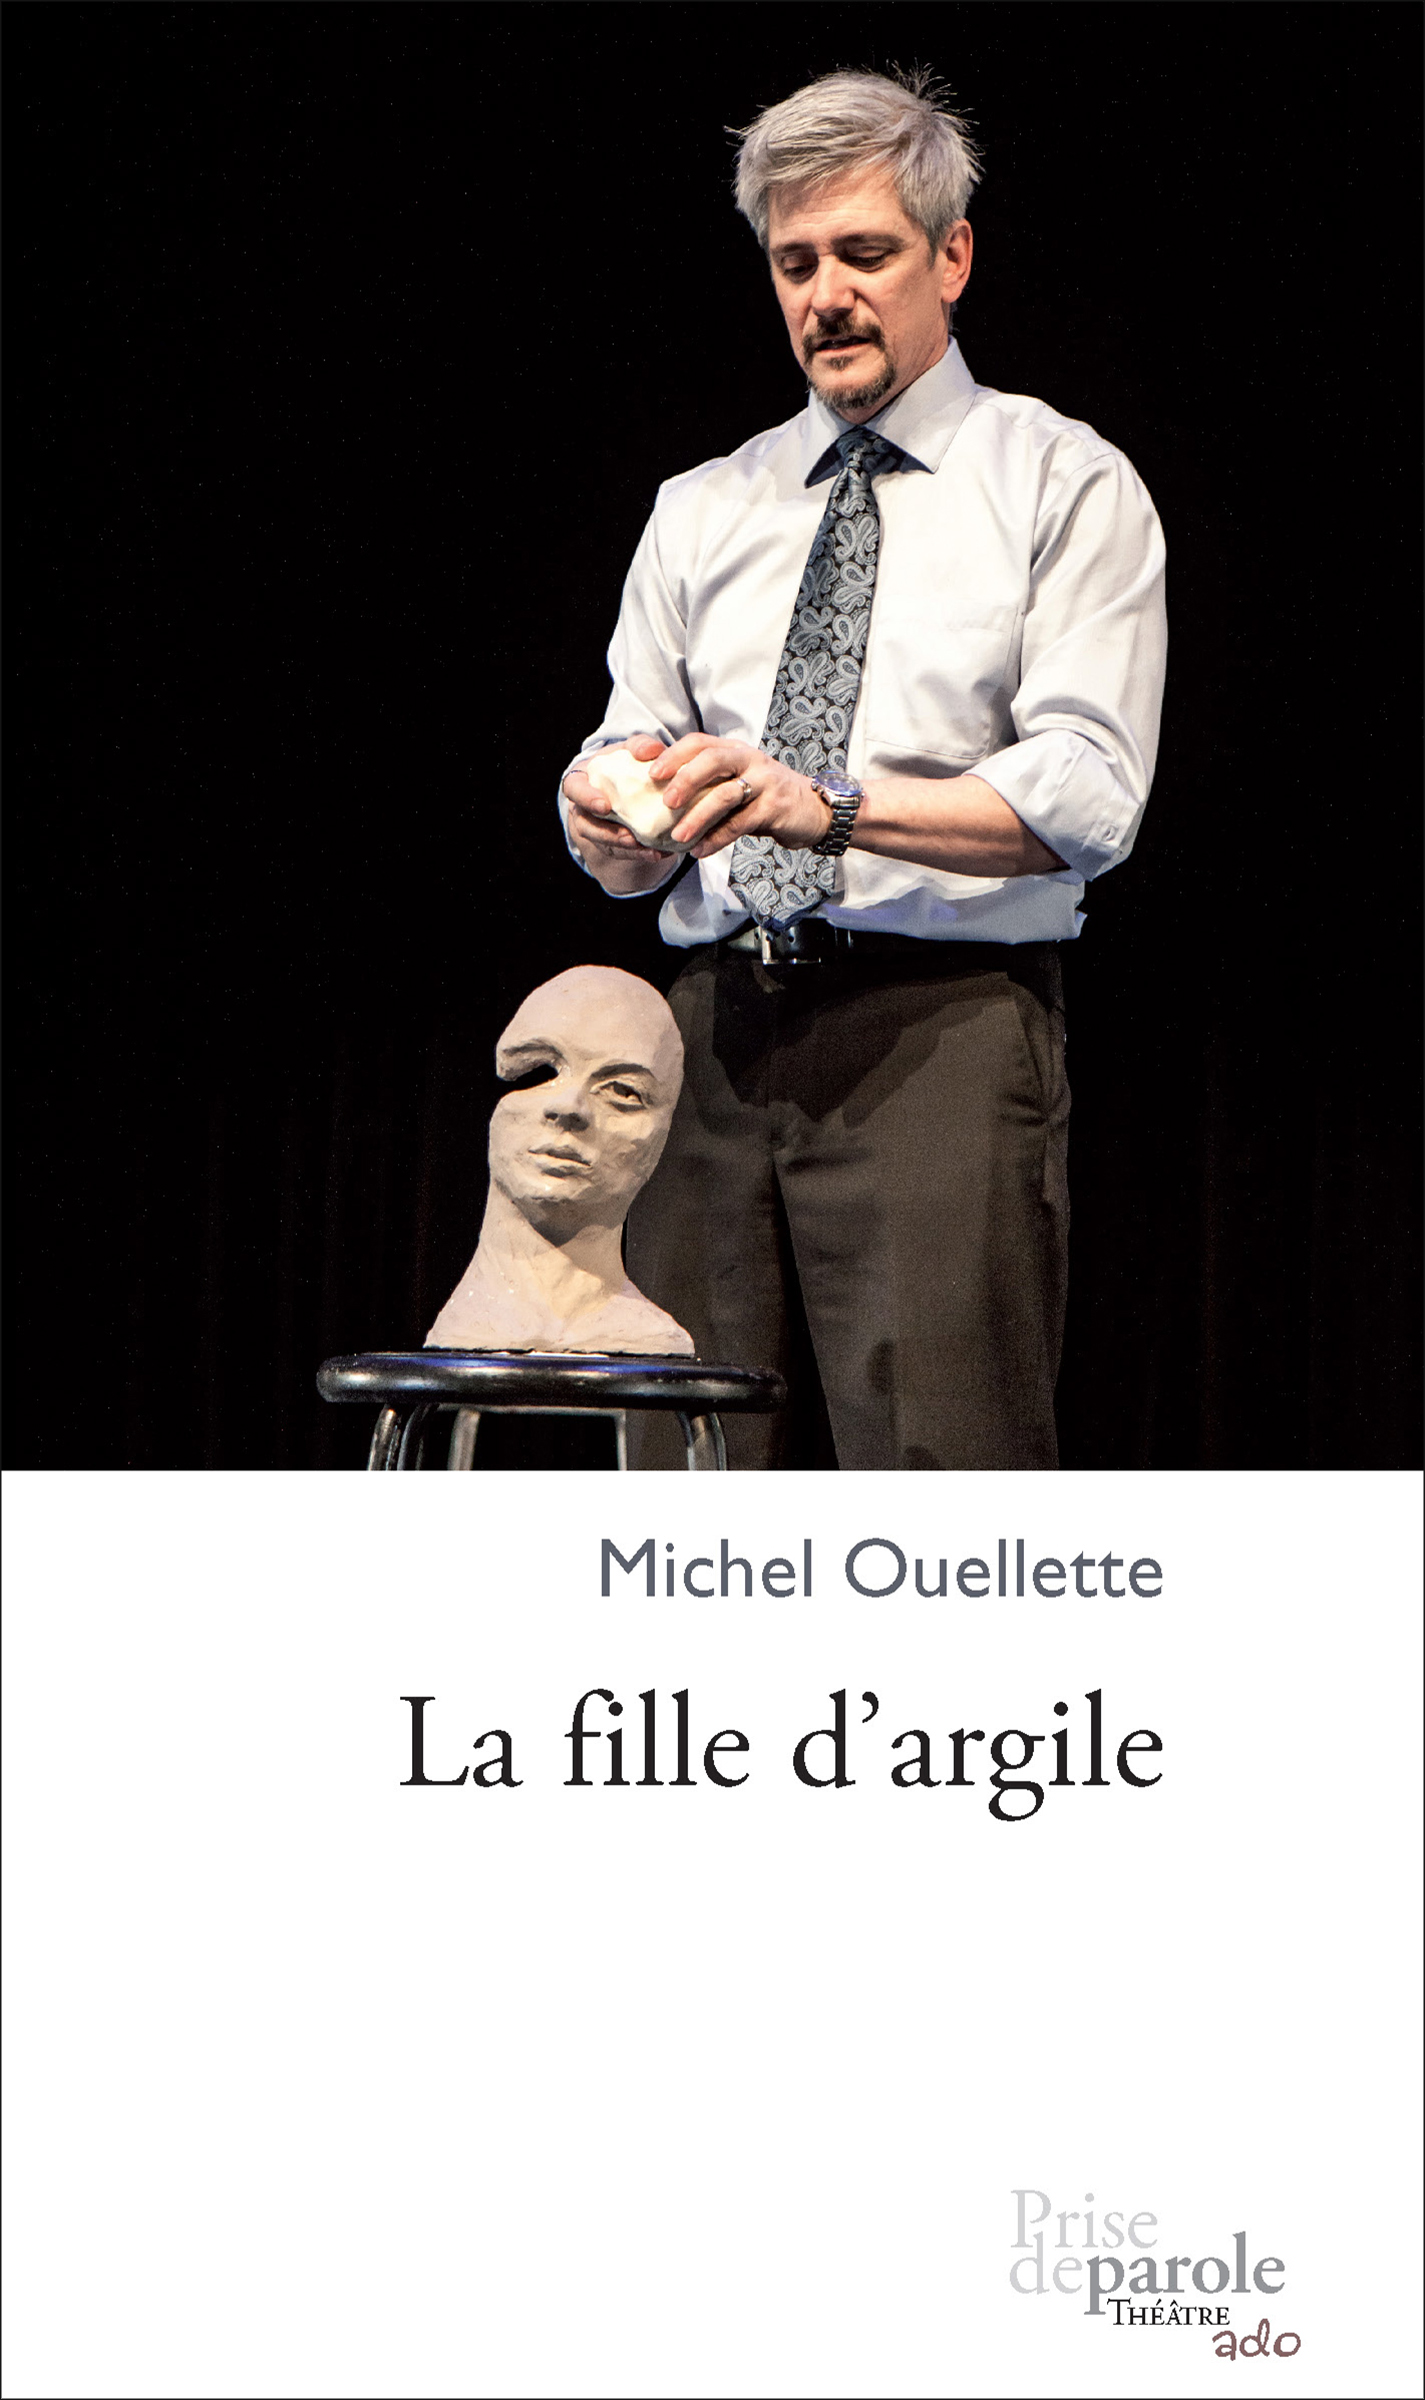 Couverture : Fille d'argile (La) Michel Ouellette